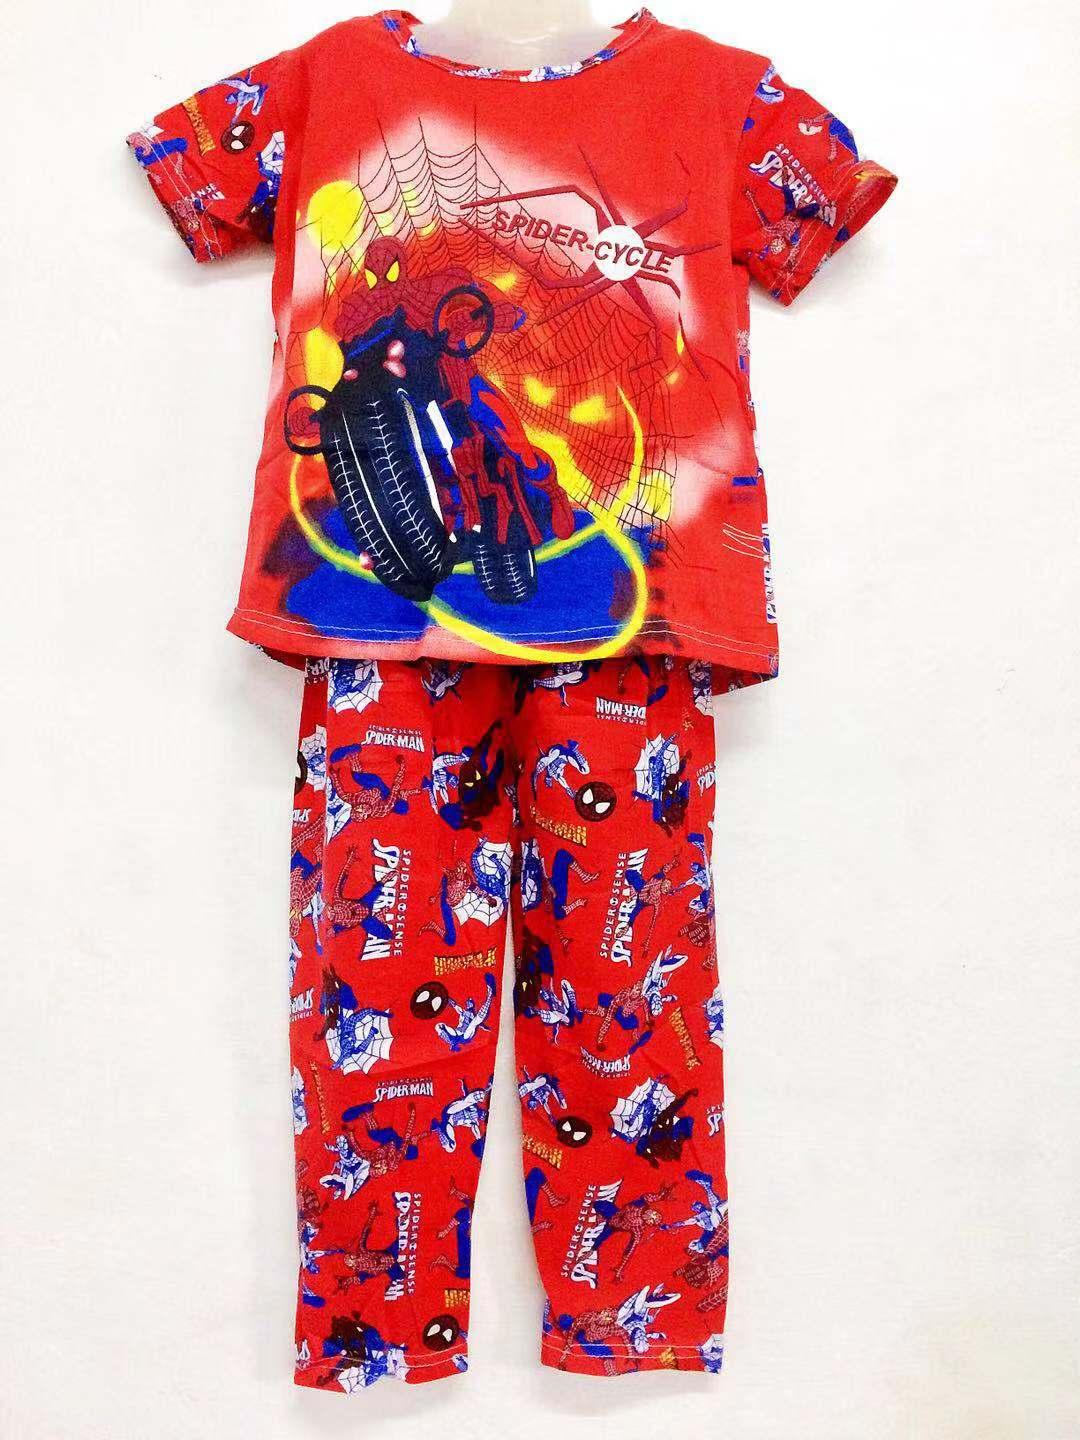 Xuebami Spiderman2 Terno Panjama Sleepwear For Boys By Xuebamiph.